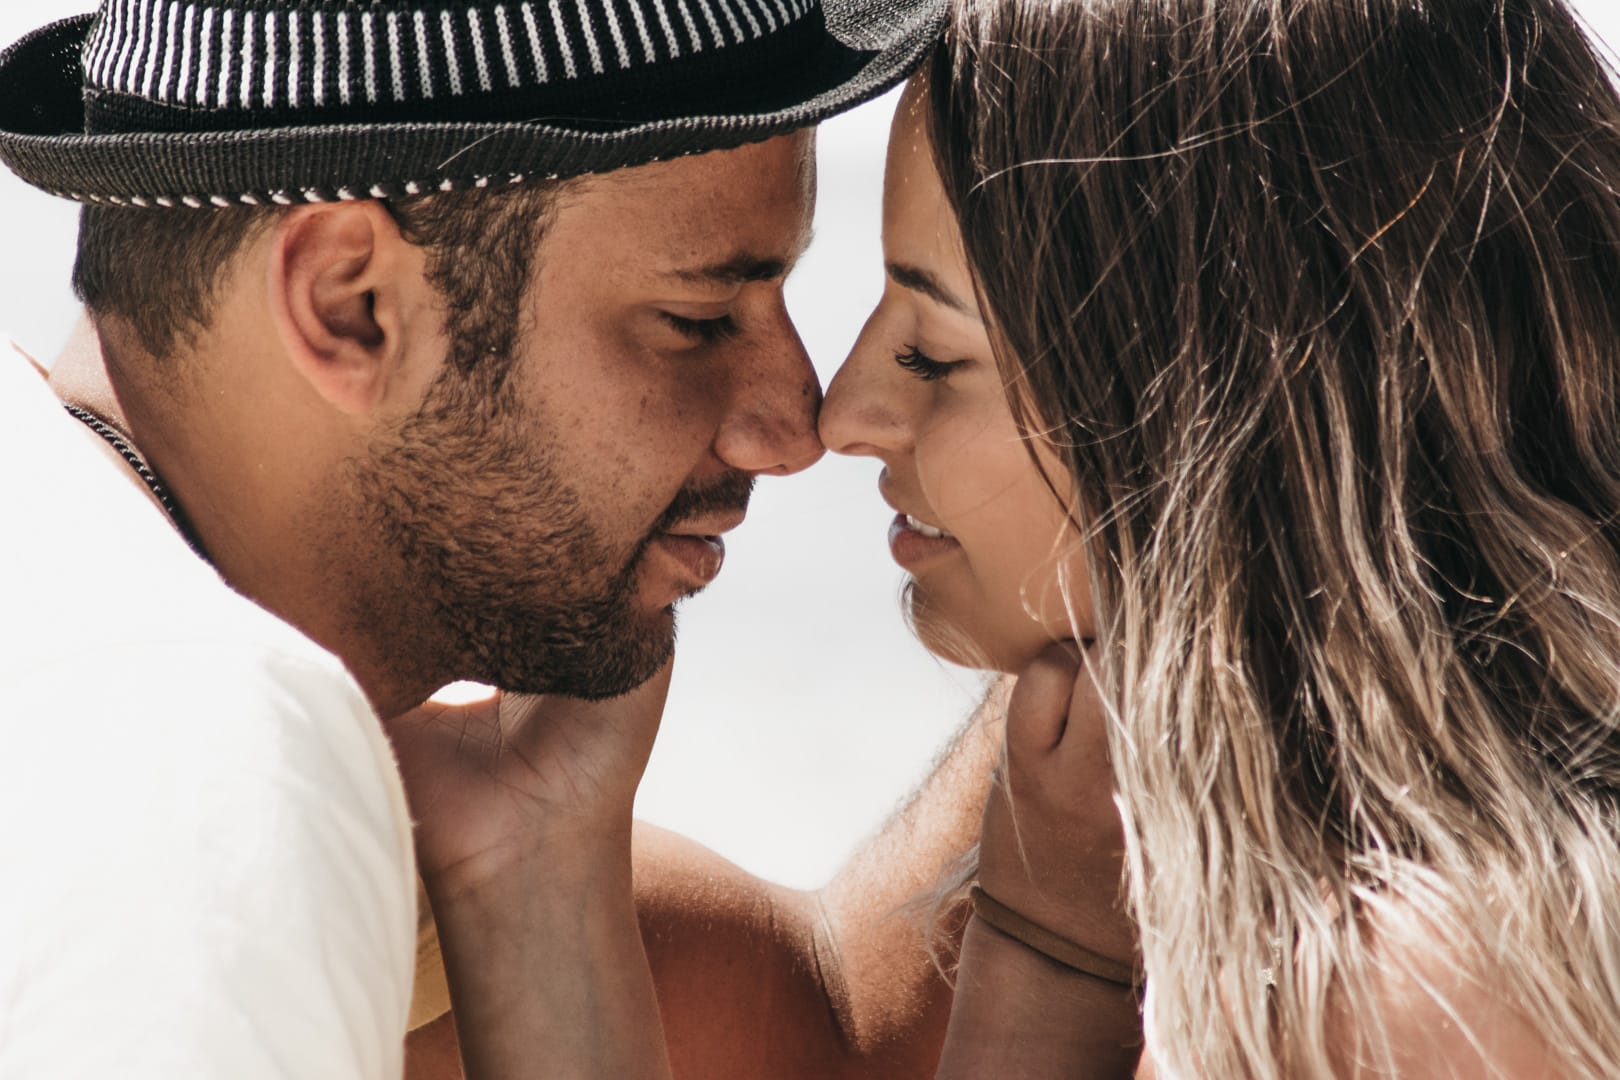 honeymoon photographer algarve. close up of the couple smiling with eyes closed